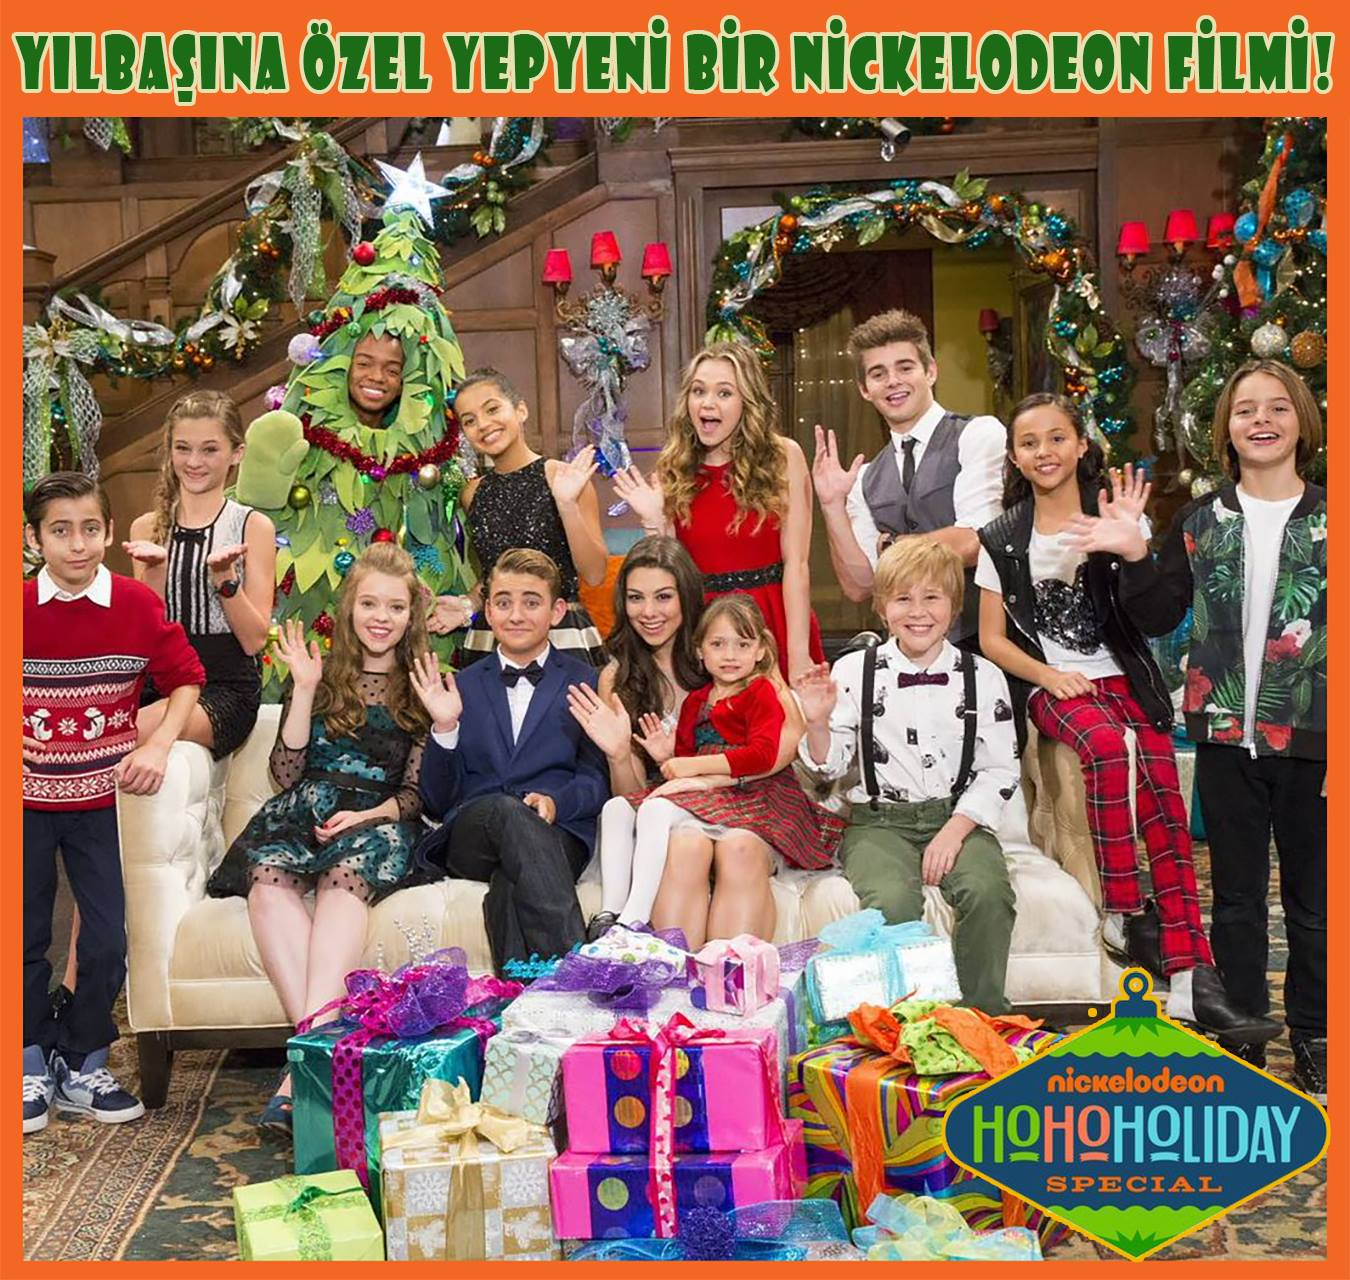 nickelodeon turkey to premiere nicks ho ho holiday special on christmas day - 2015 Christmas Specials